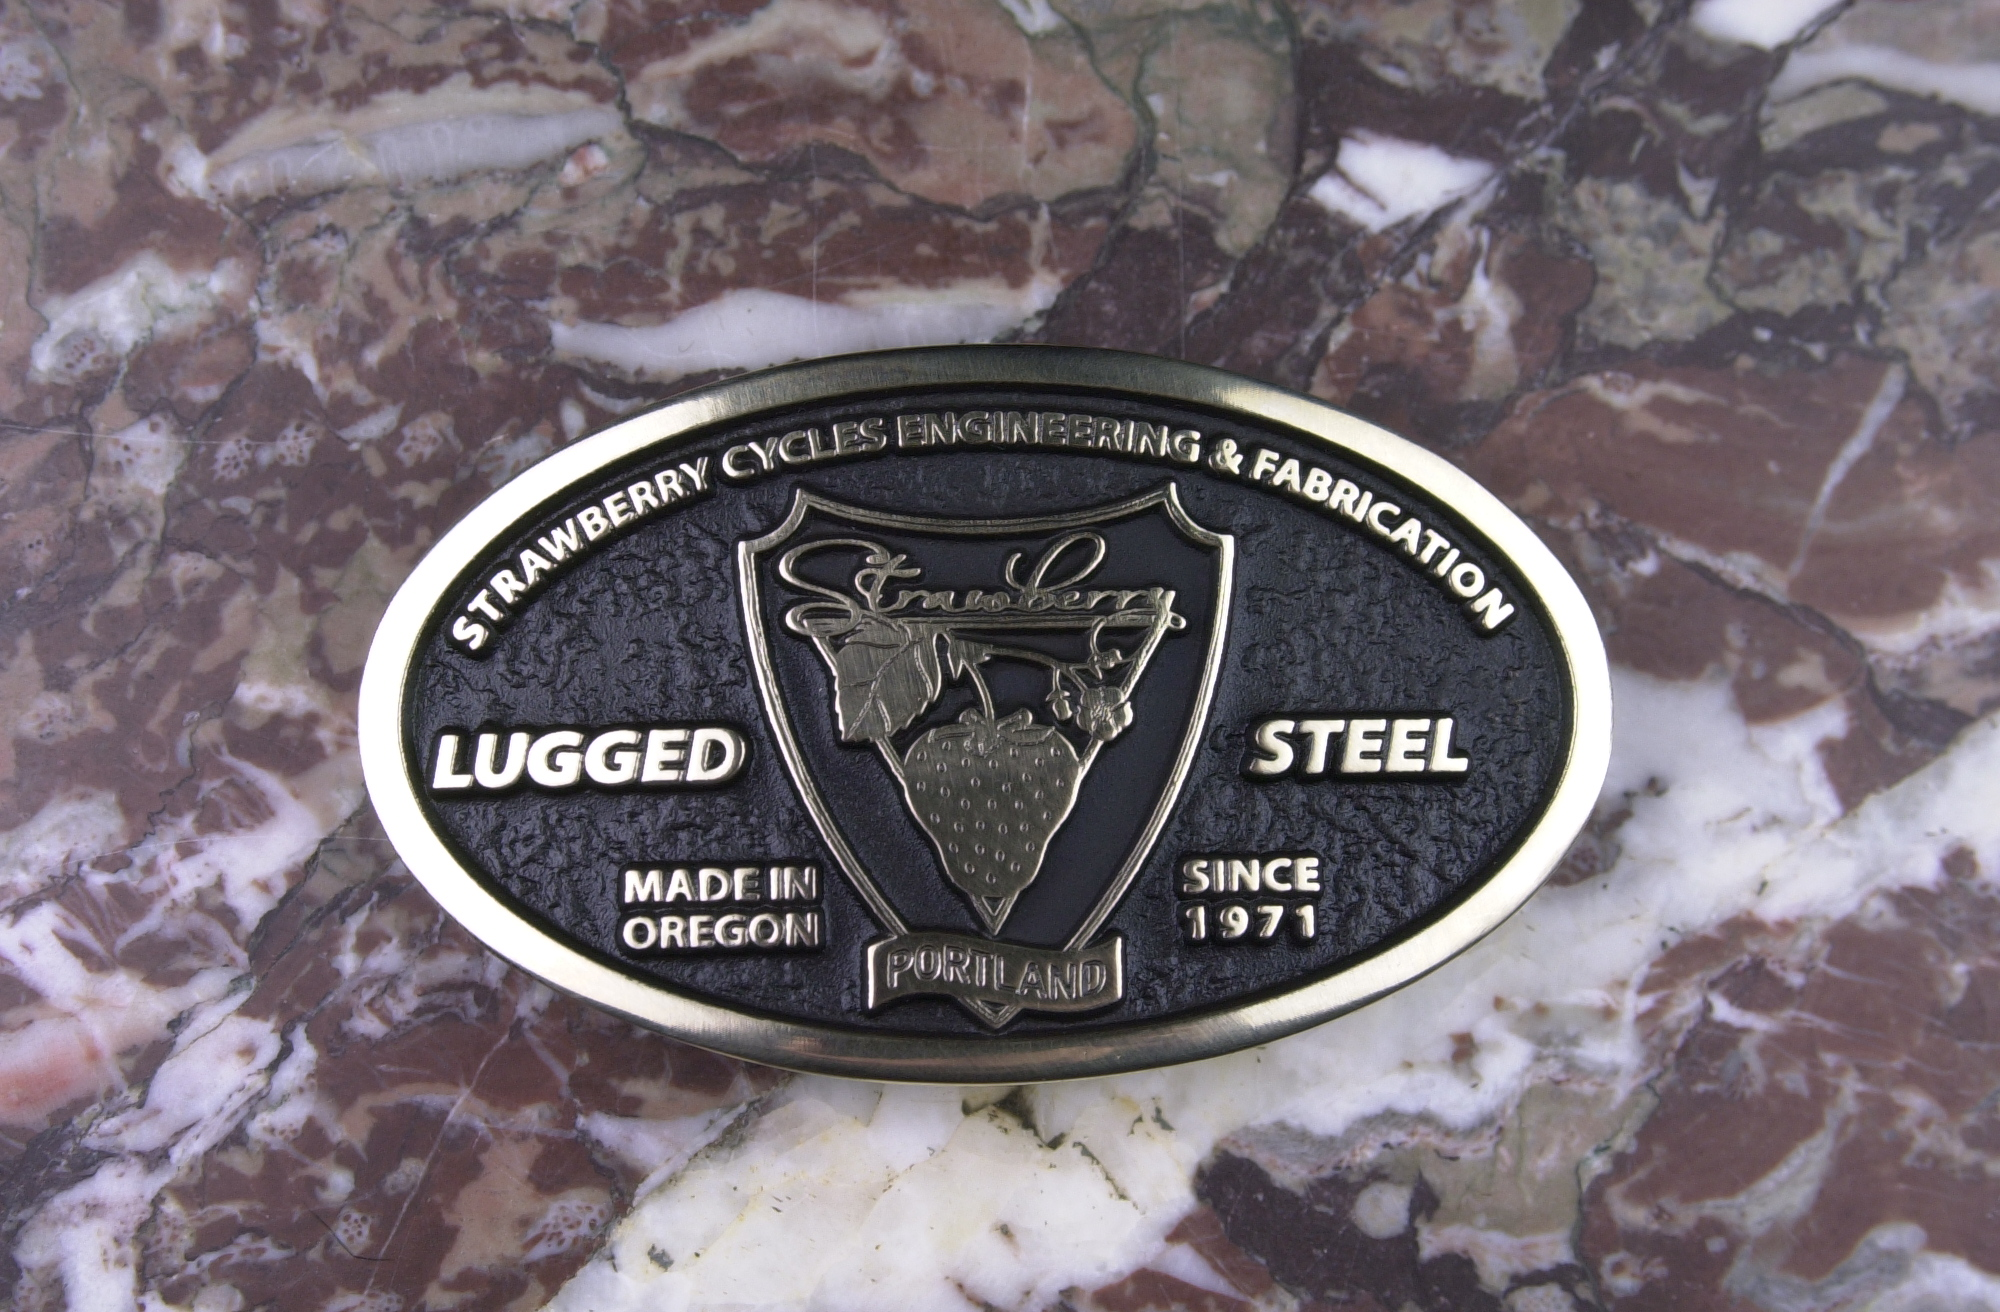 "Strawberry 45 year commemorative brass belt buckle designed by my wife, Kelley Dodd (www.krdpdx.com) and manufactured in the USA.  $35.00 delivered via USPS throughout the lower 48.  To order, please contact Andy. PayPal and good check accepted.  Buckle is designed for Western belts up to 1-3/4"" wide and is cast in solid brass and measures approximately 3-3/4"" x 2-1/4""."